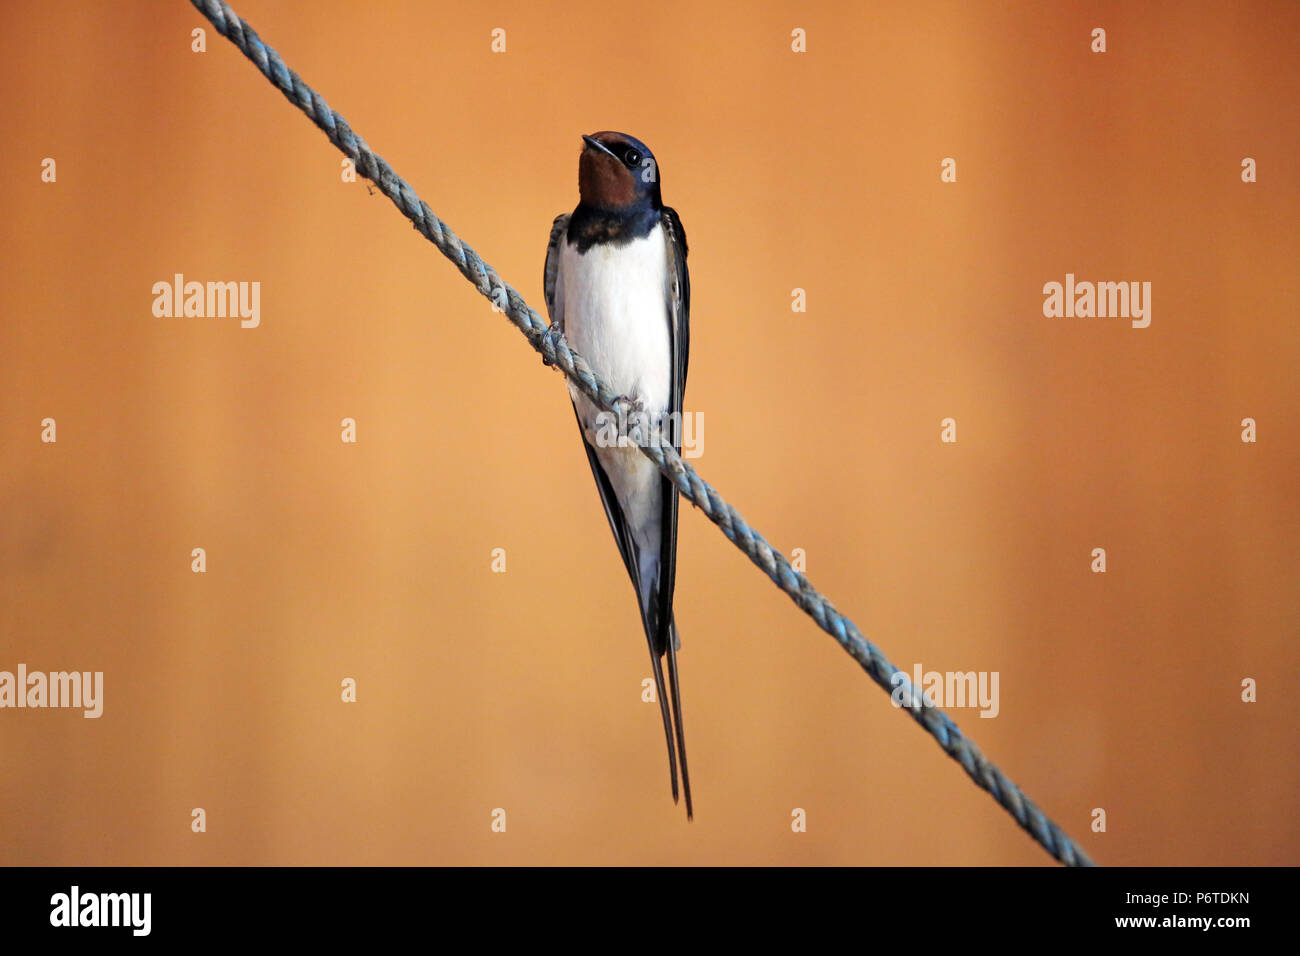 Oberoderwitz, barn swallow sits on a tightrope - Stock Image